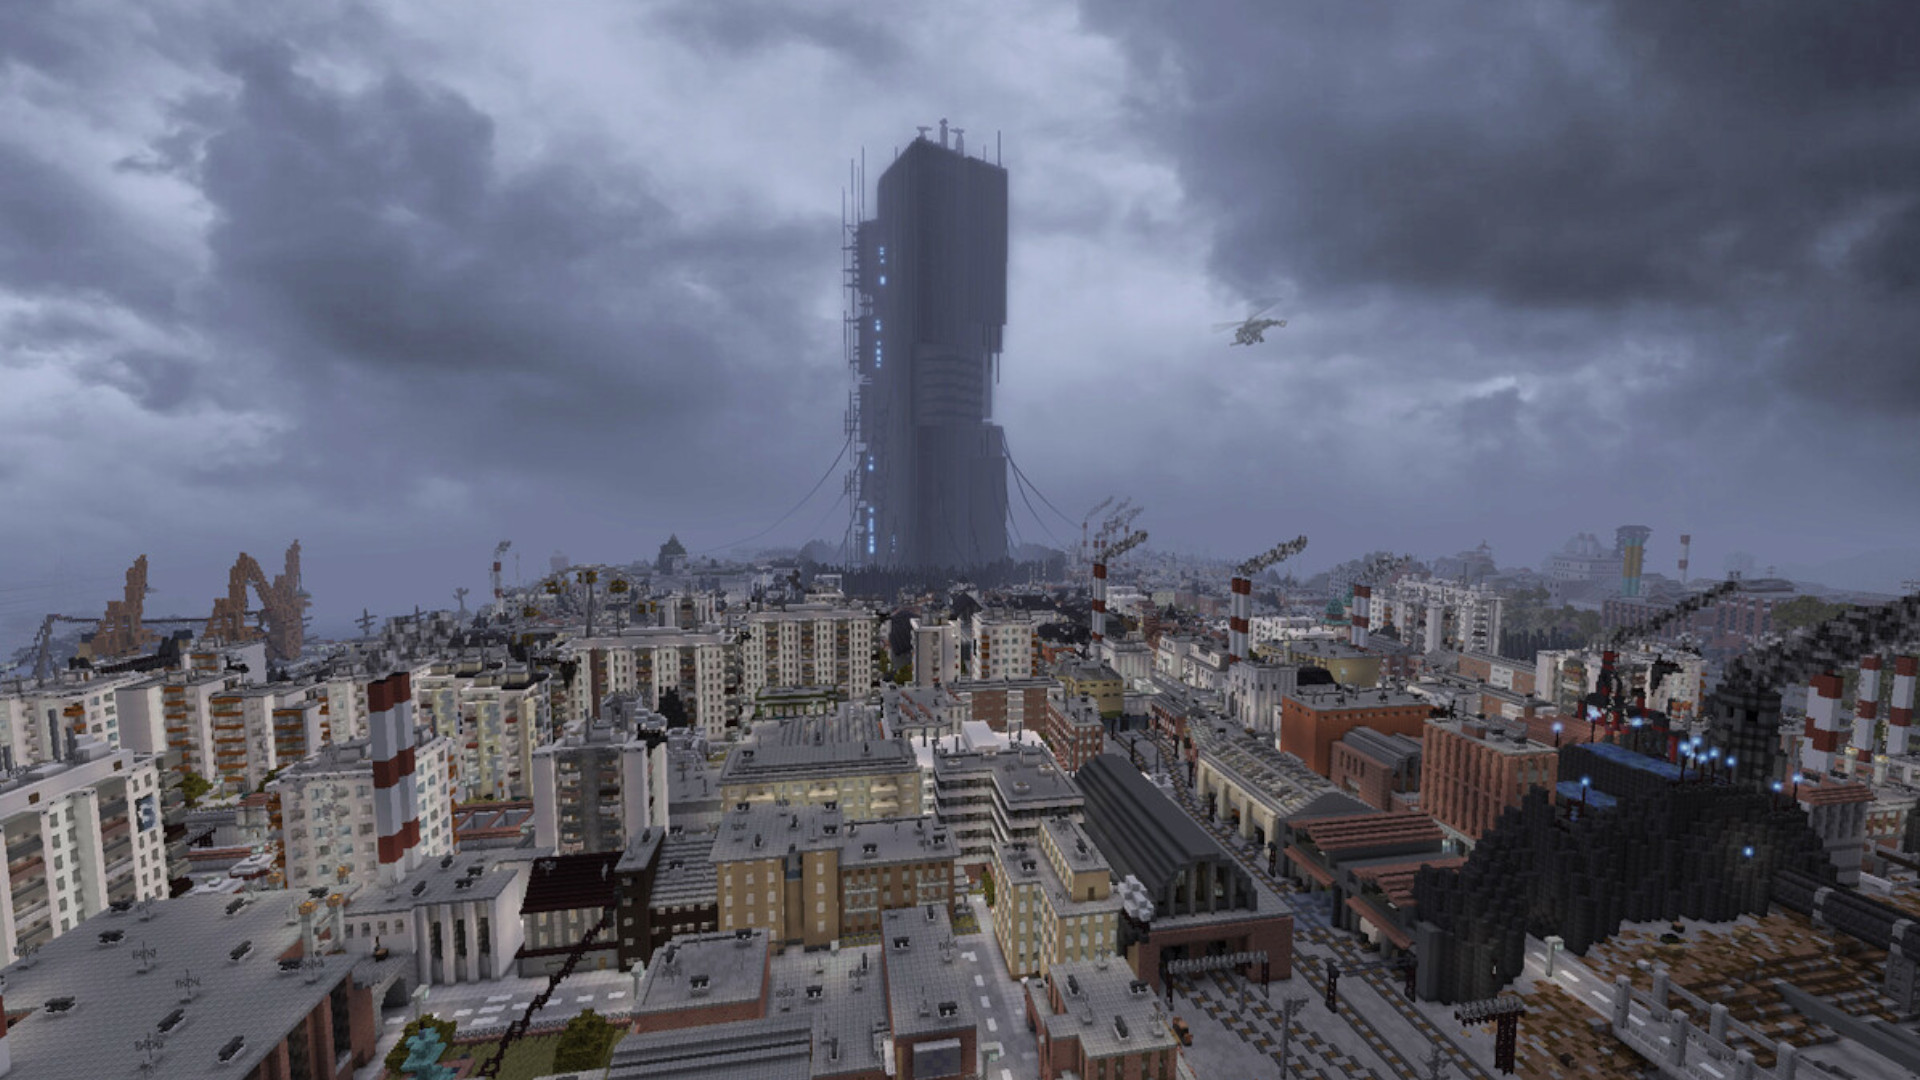 Players have spent five years rebuilding all of Half-Life 2 in one Minecraft map